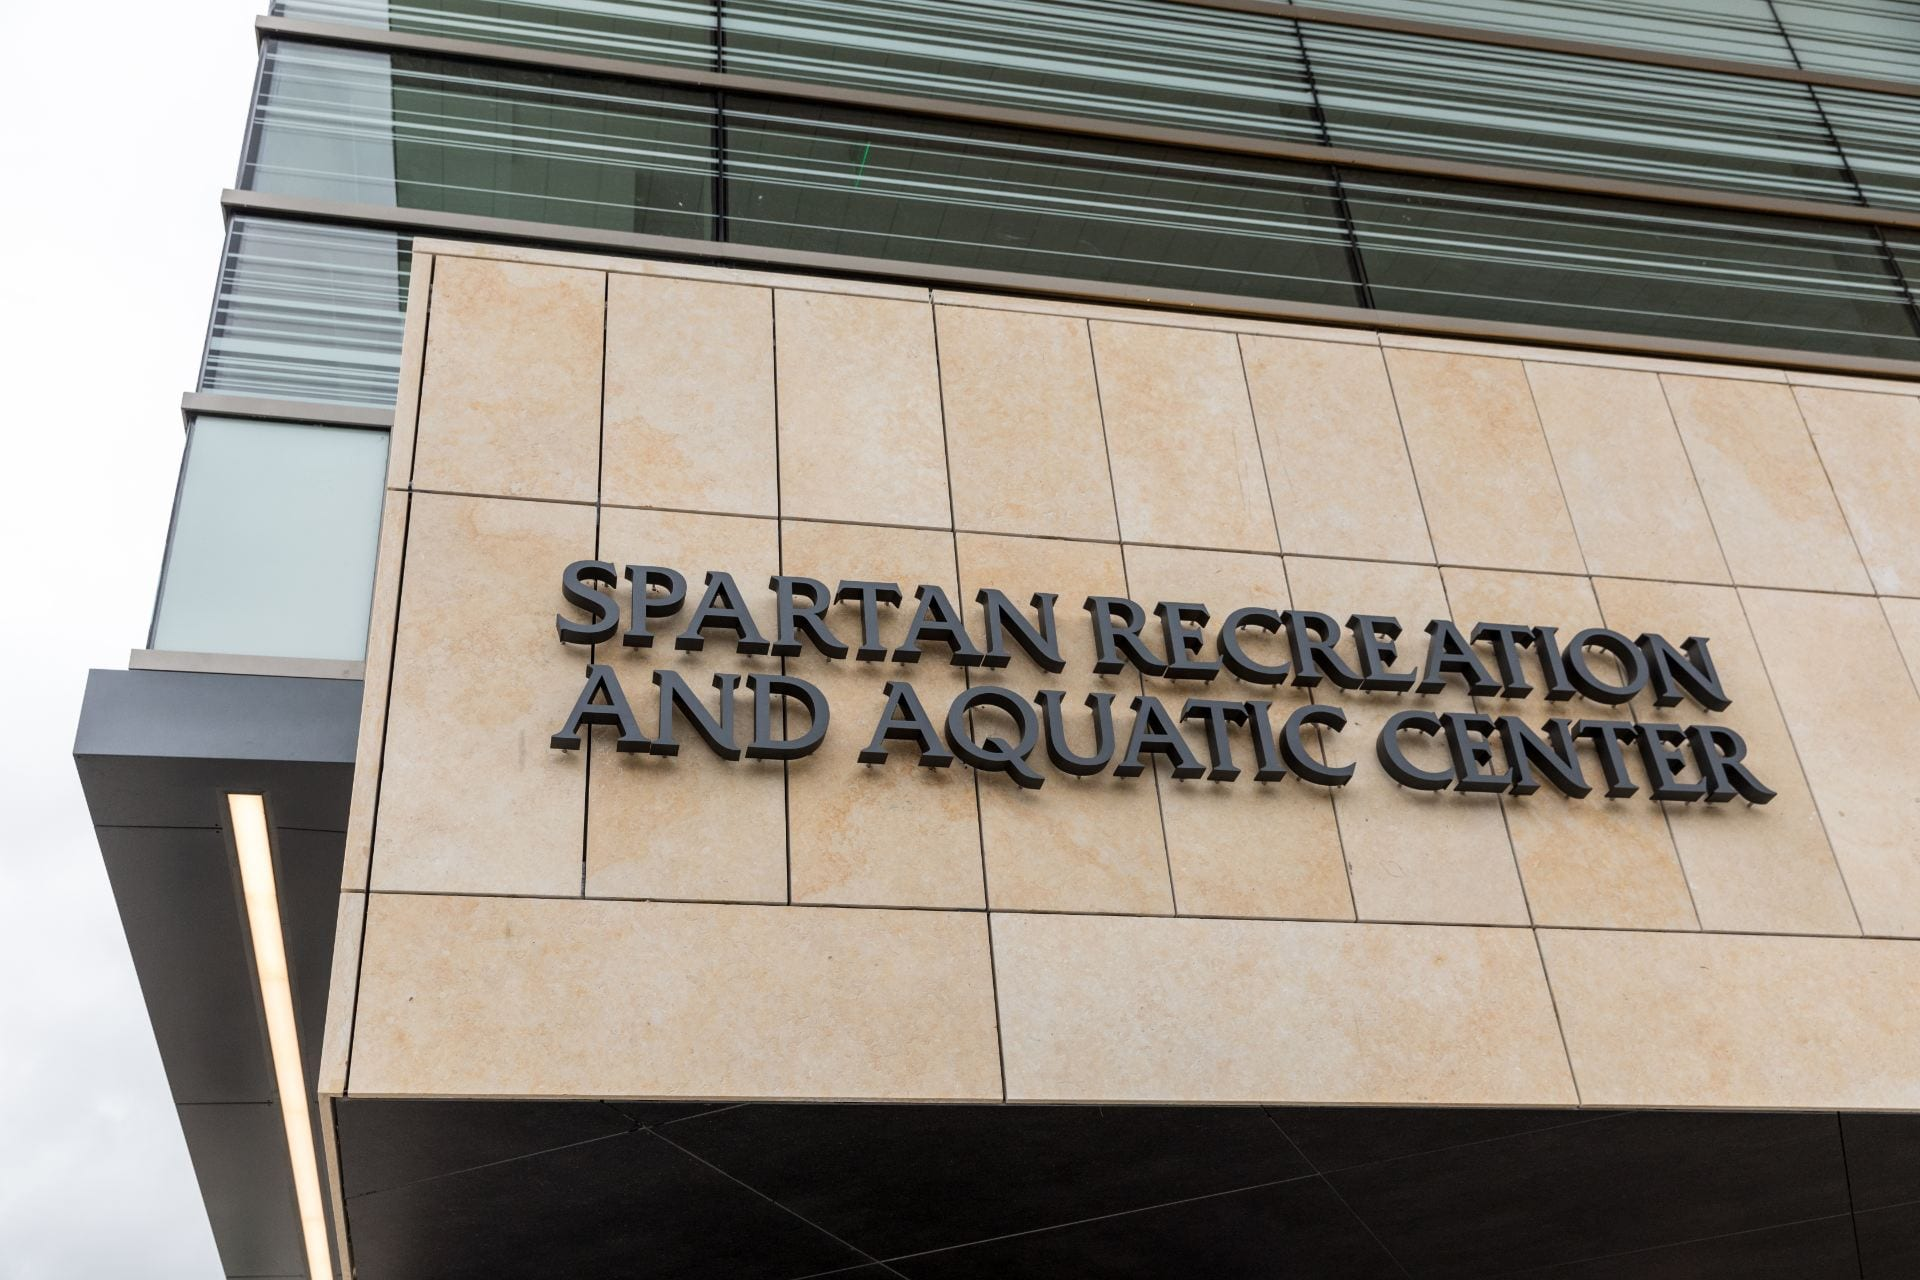 Students and community members are invited to a ribbon cutting for the Spartan Recreation and Aquatic Center on April 18. Photo by David Schmitz